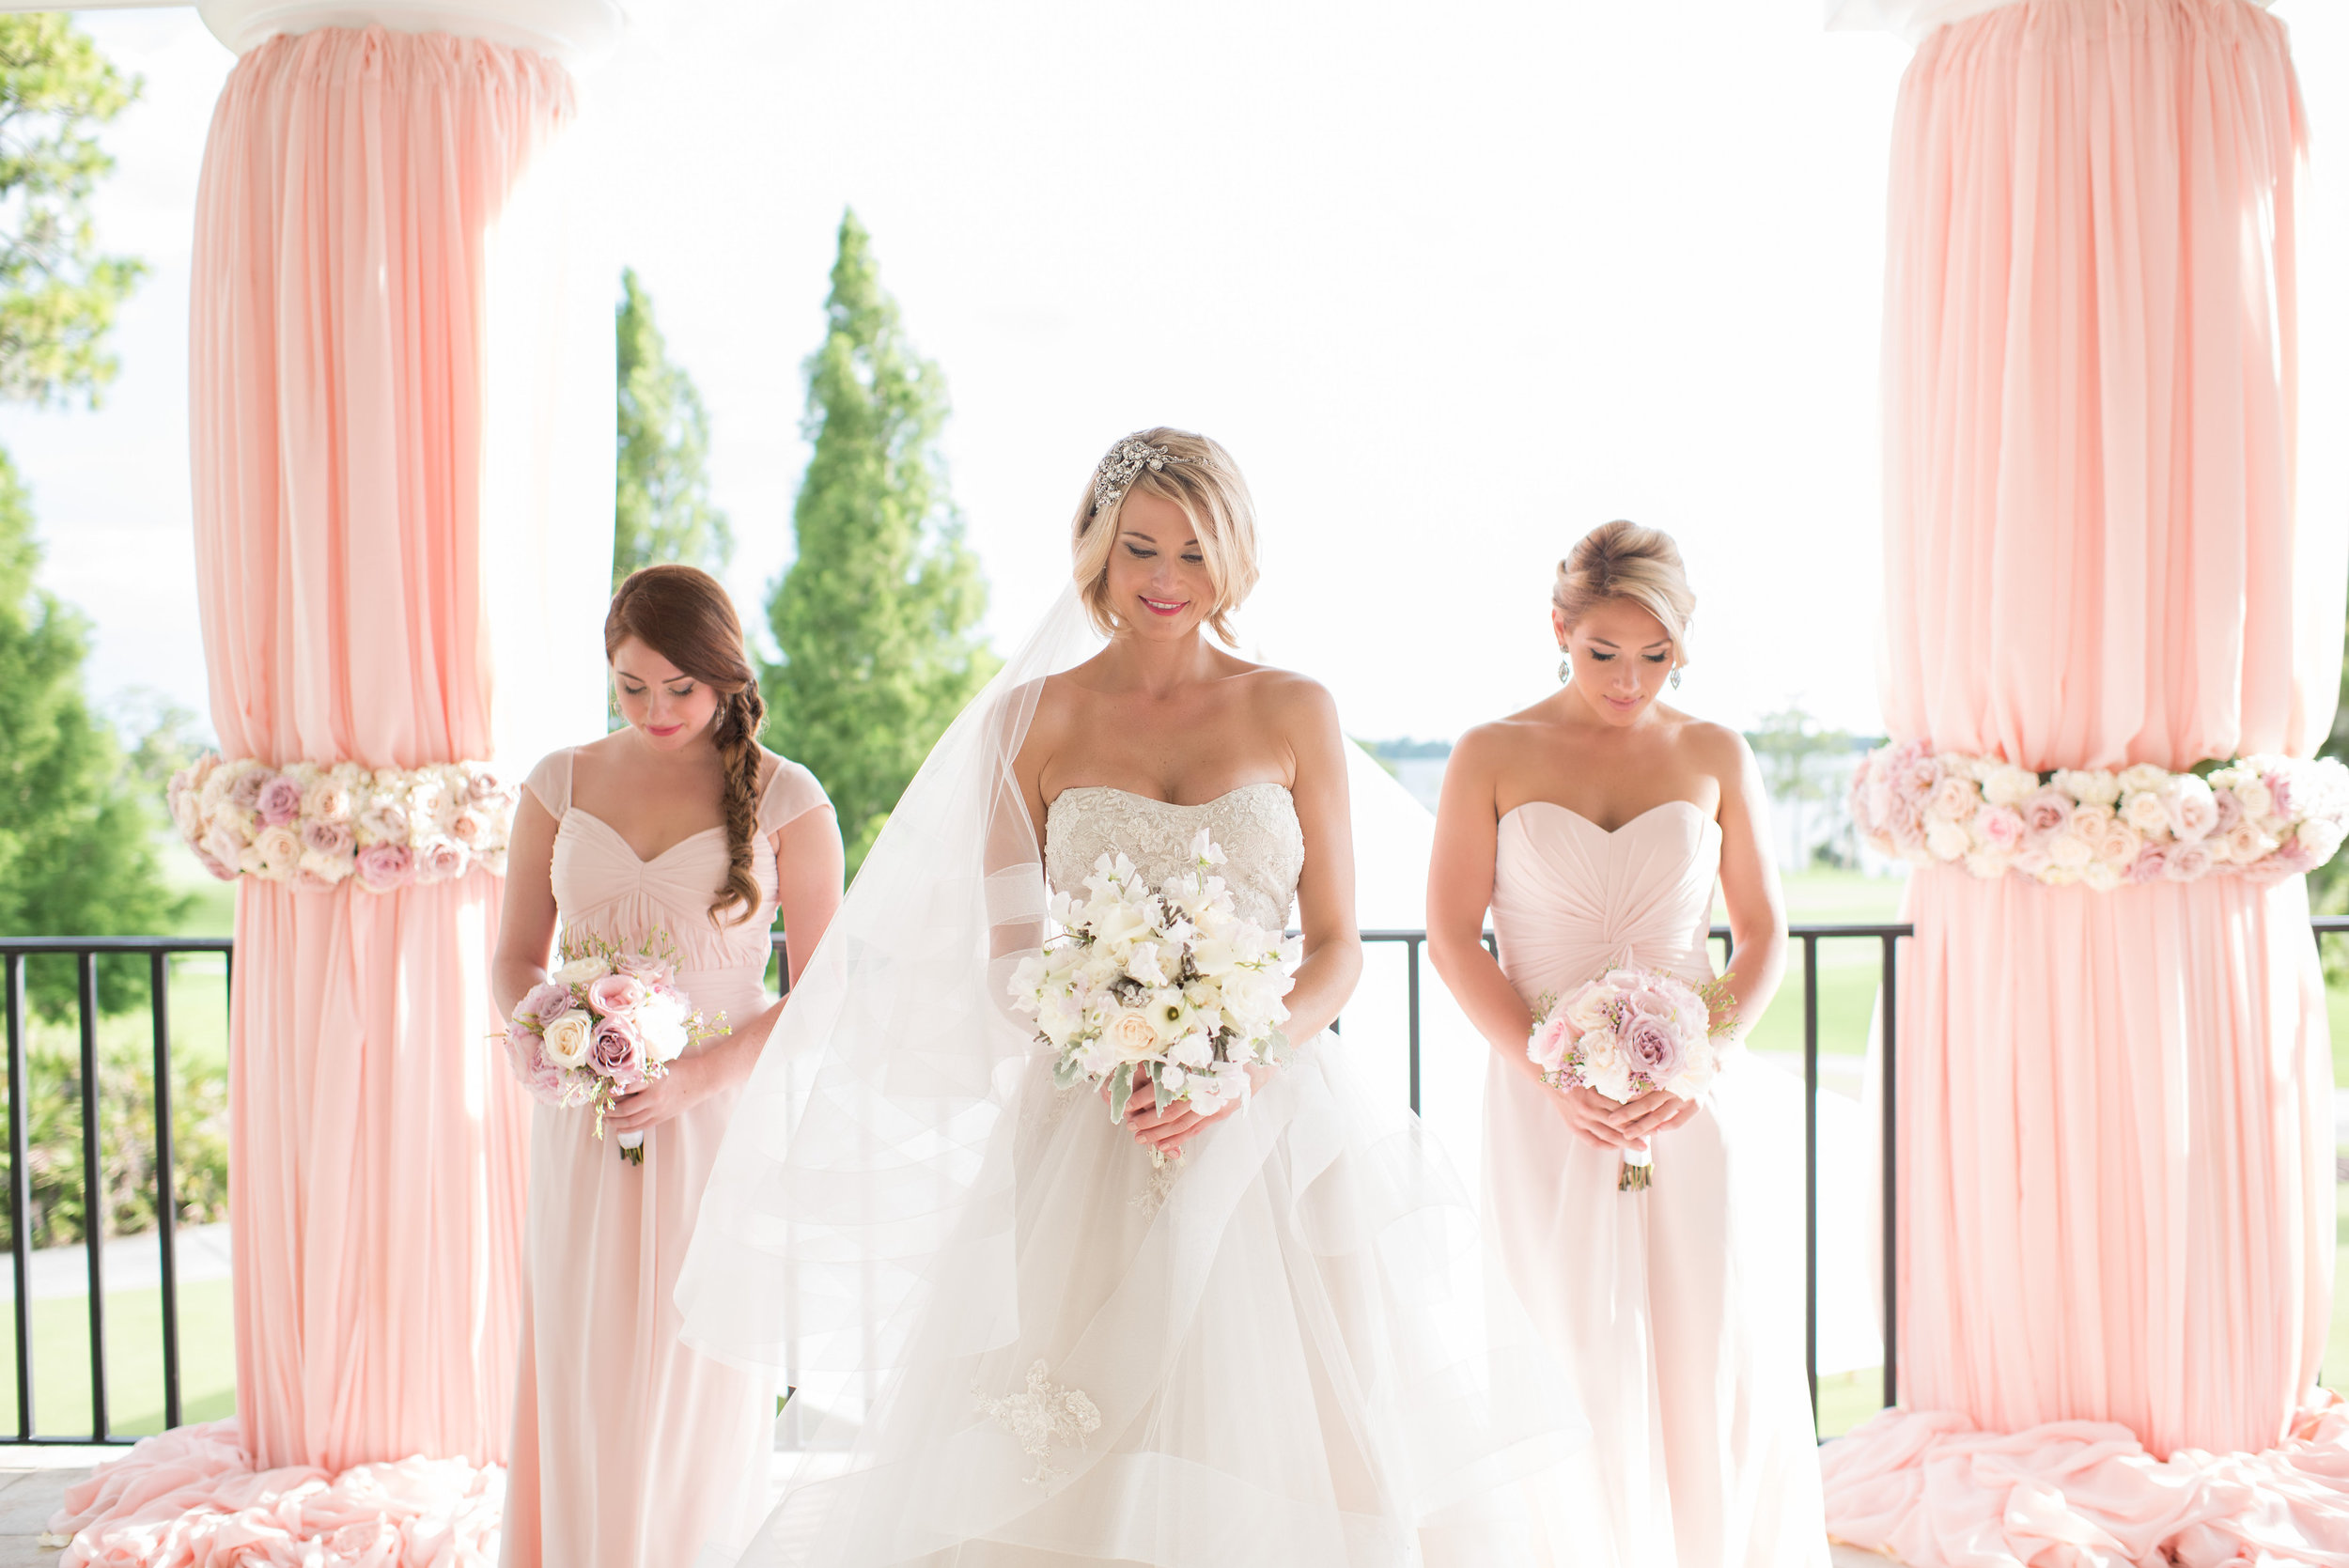 Wedding Photographer:  Kathy Thomas Photo |  Wedding Coordinator:  The Busy Bee Events and Design  | Wedding Location: Lake Nona Golf and Country Club